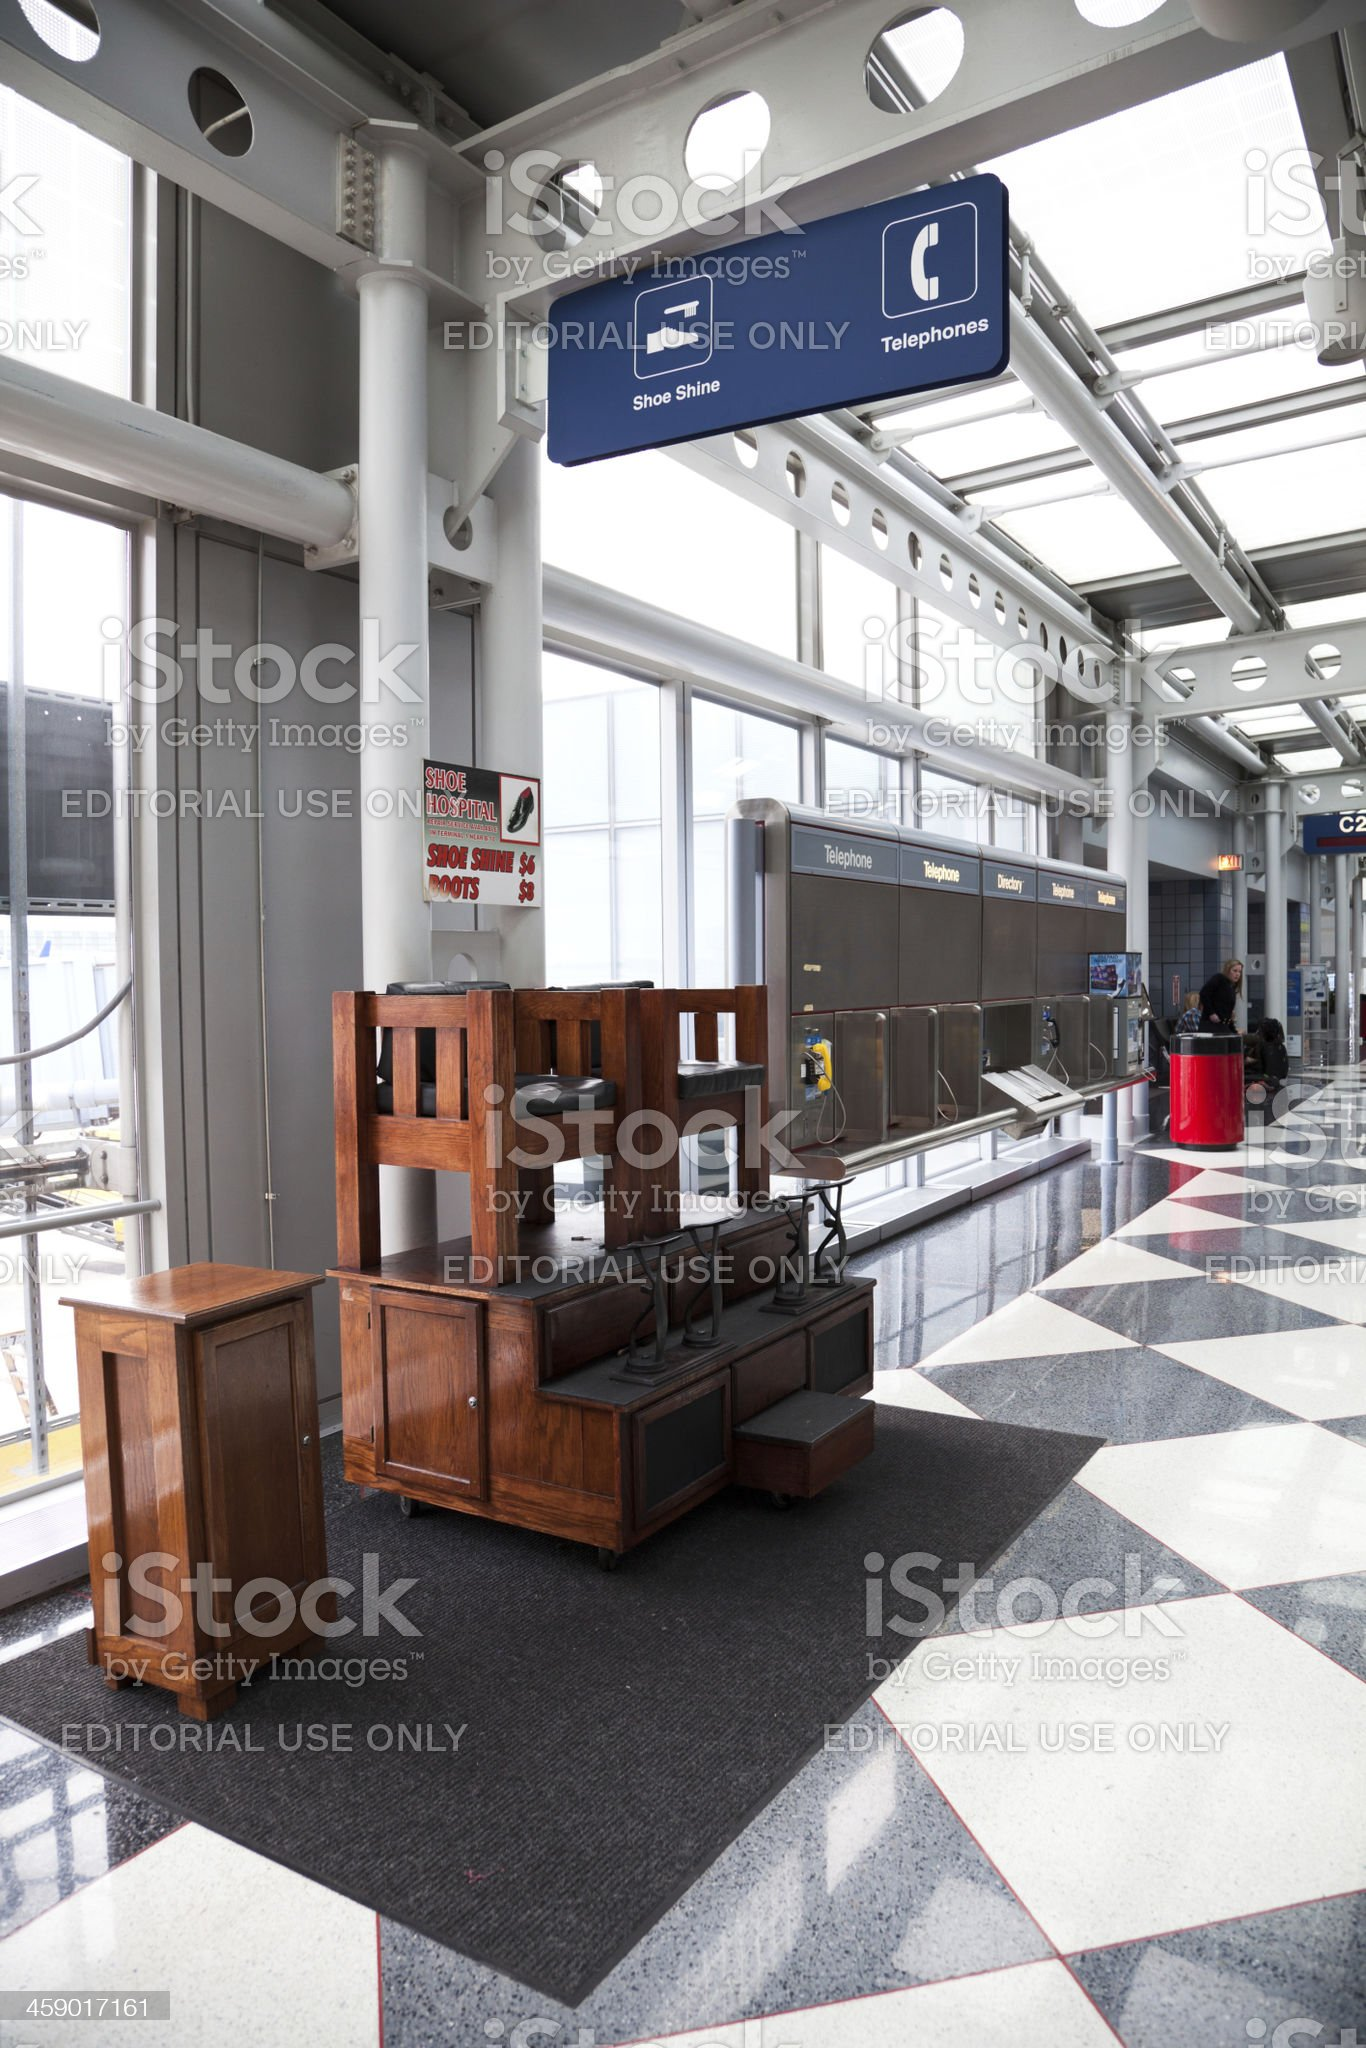 Shoe shine service at O'Hare Airport in Chicago royalty-free stock photo